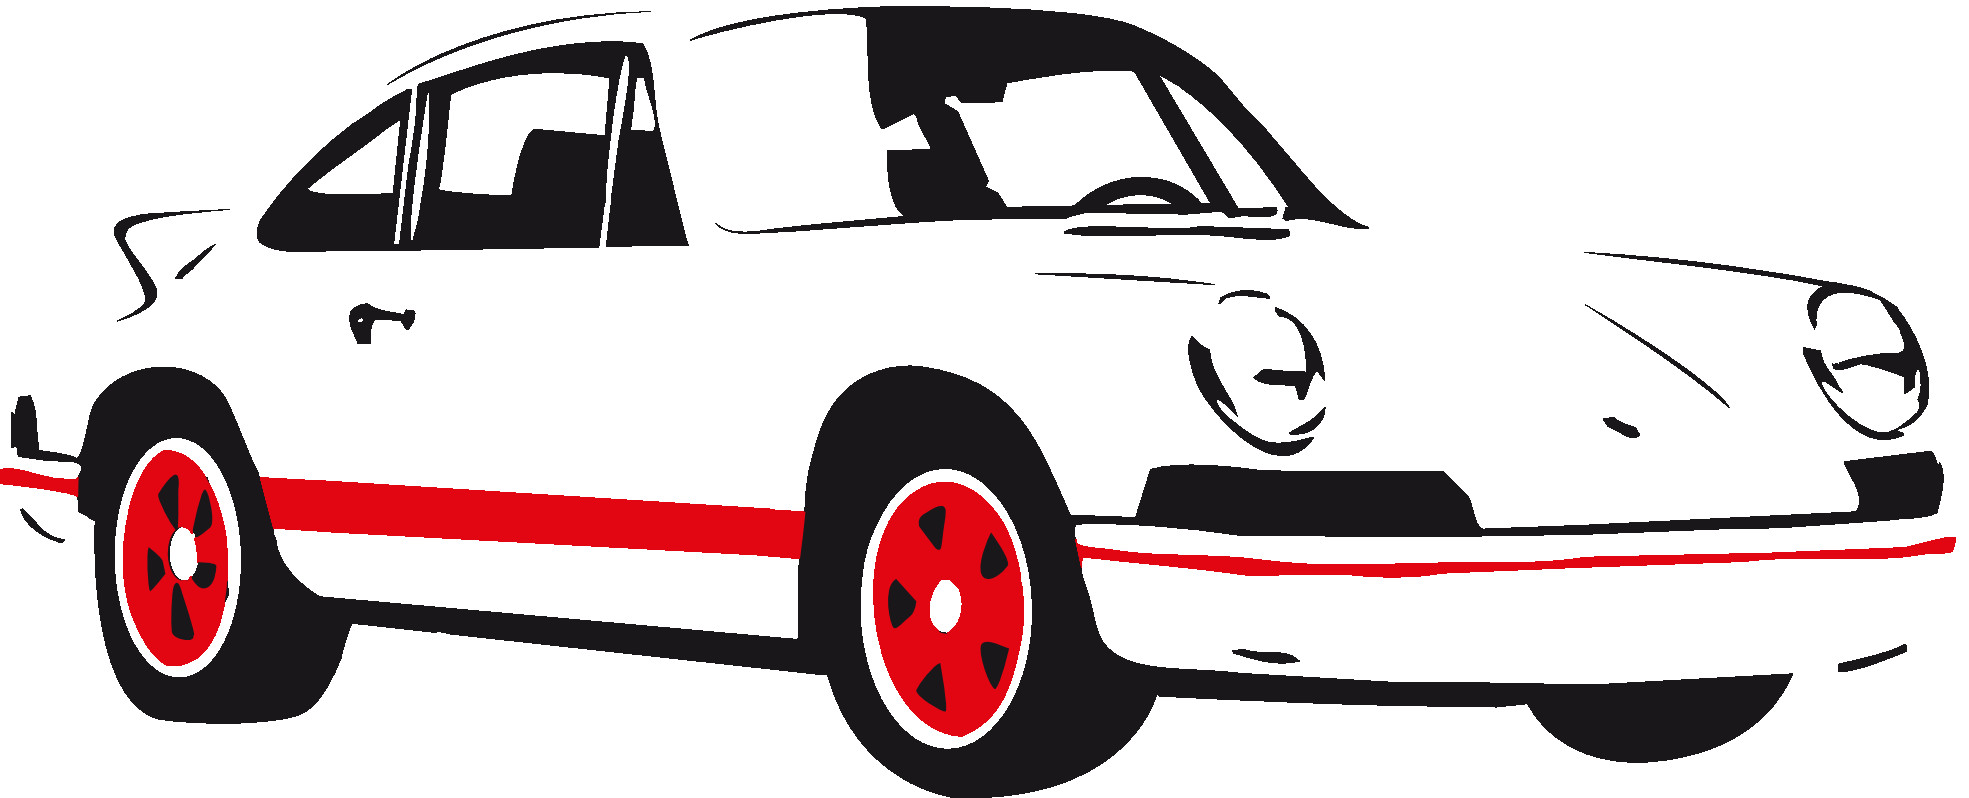 1969x798 Vector For Free Use Car Silhouette Within Png Transitionsfv